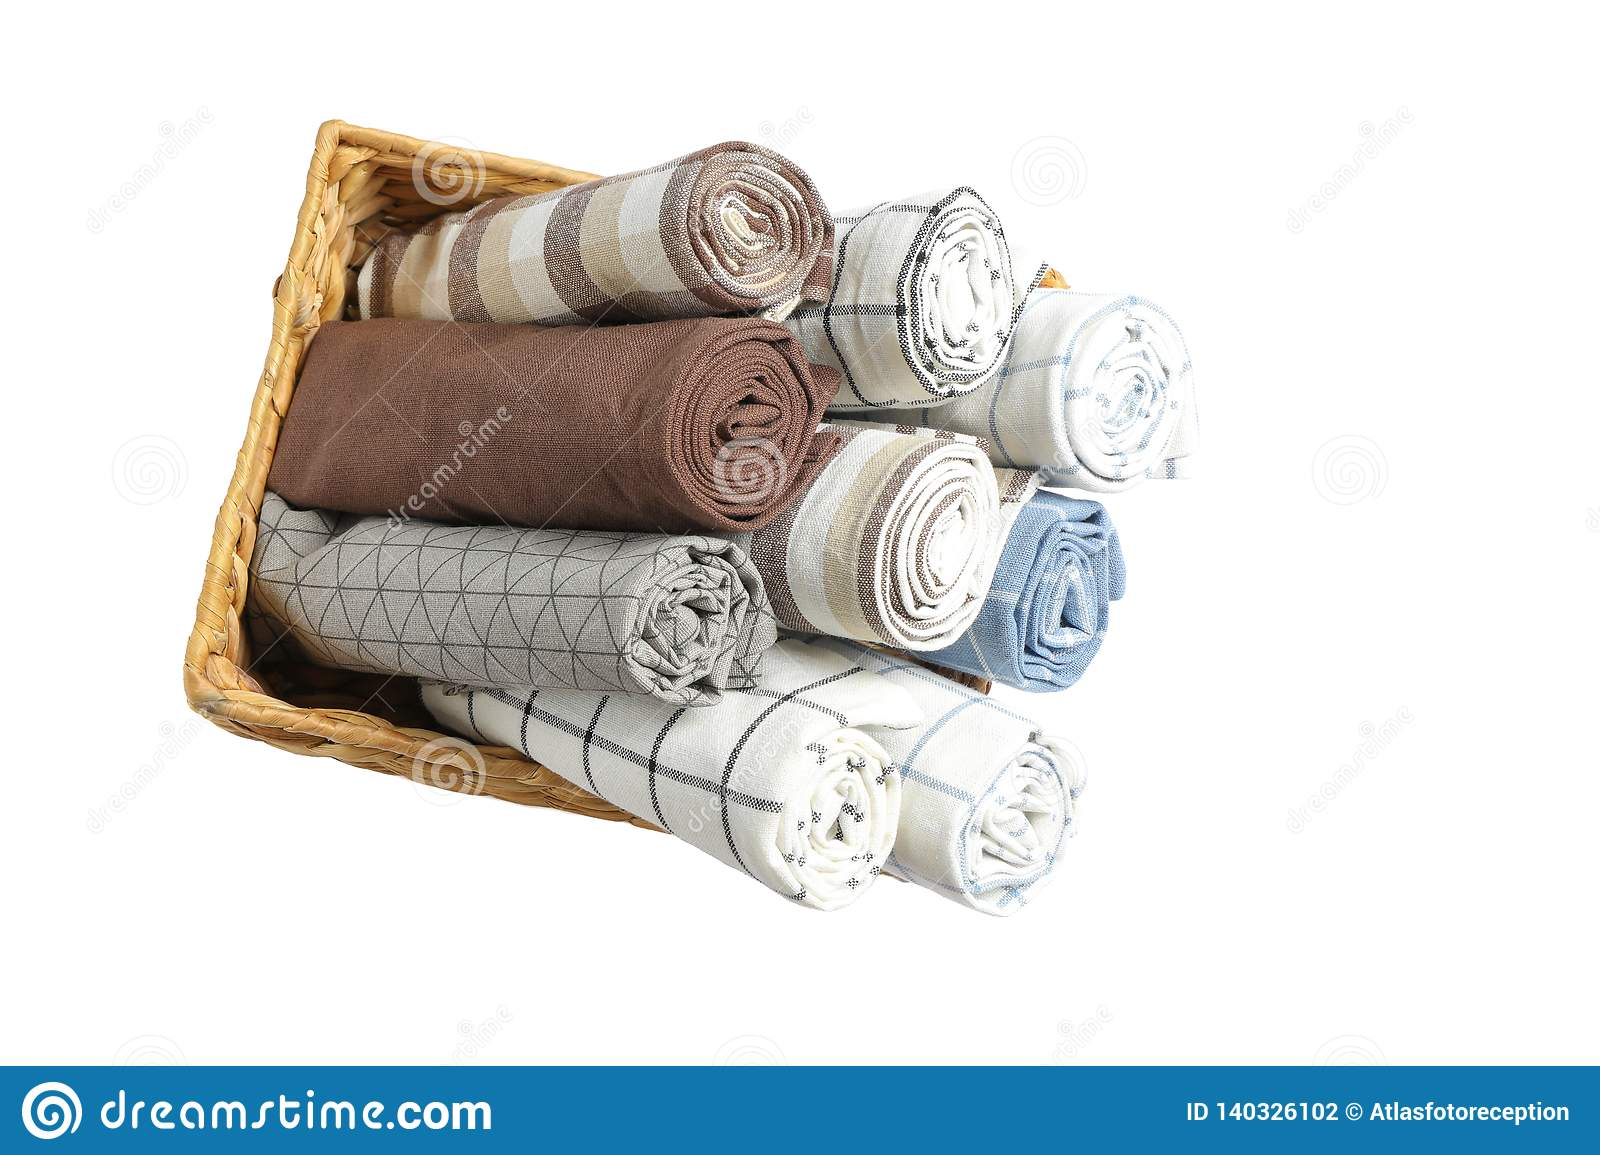 Rolled up fabric napkins in basket isolated